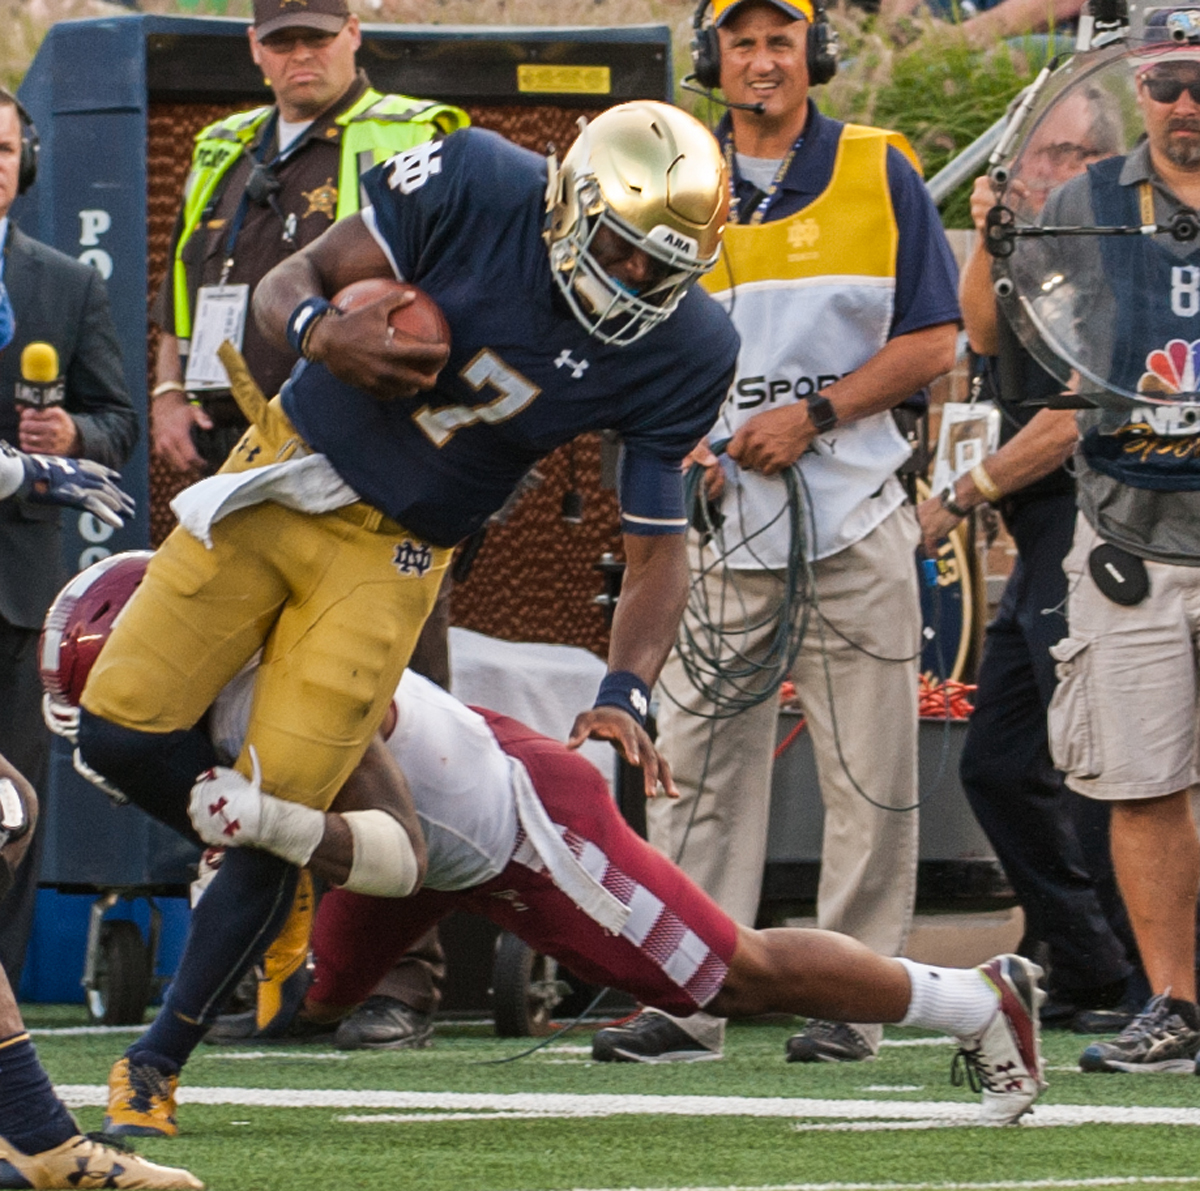 Irish junior quarterback Brandon Wimbush rushes the ball during Notre Dame's 49-16 win over Temple on Sept. 2 at Notre Dame Stadium. Wimbush rushed for 106 yards against the Owls.